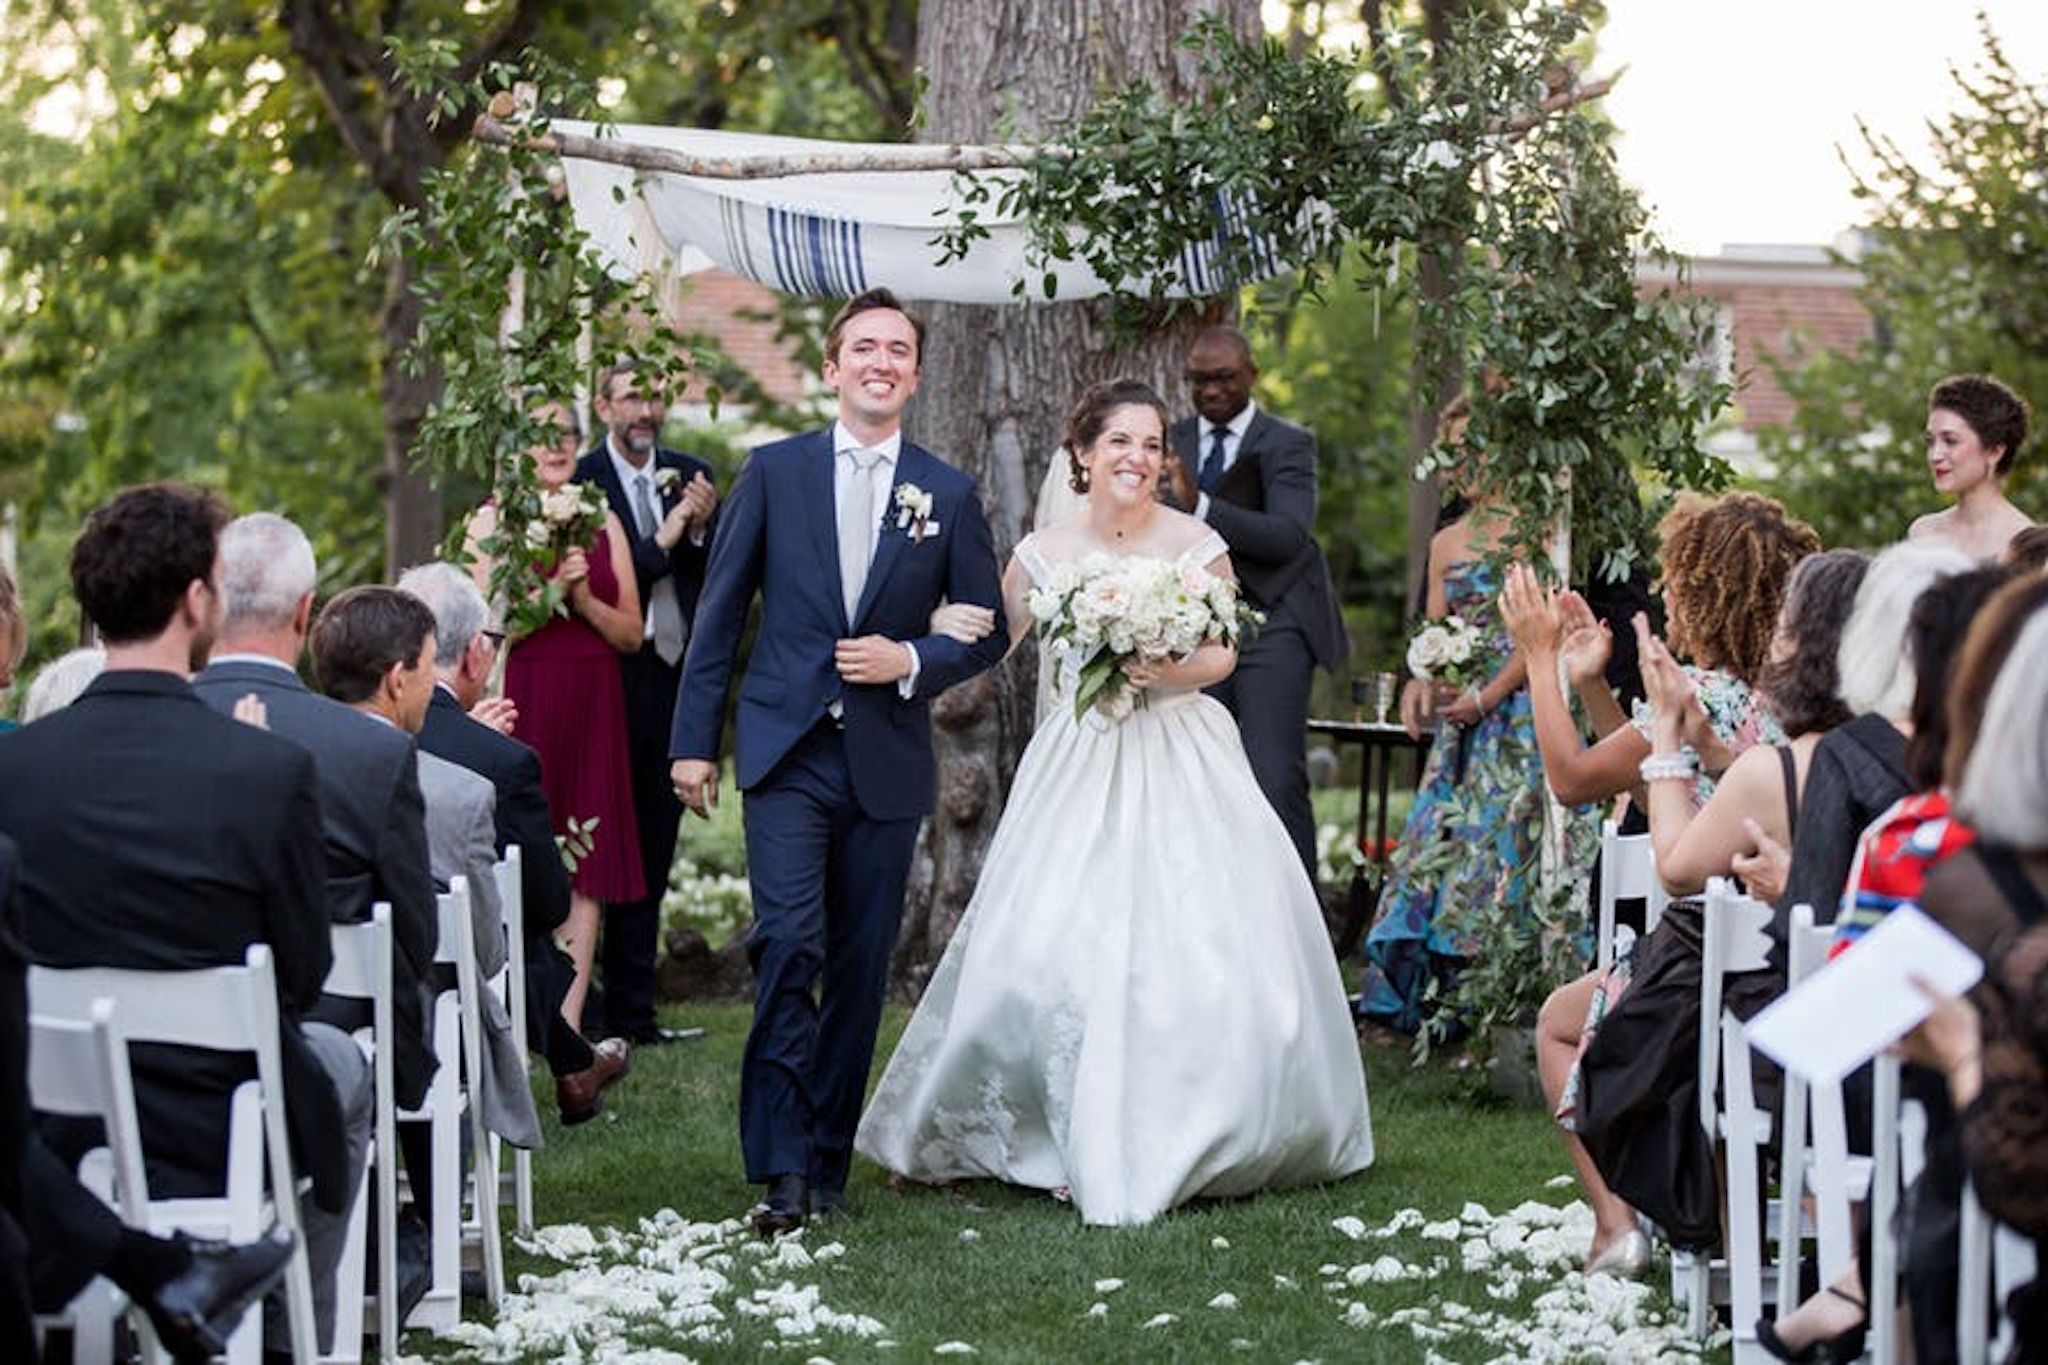 garden wedding ceremony featuring chuppah and trees at meridian house in washington, d.c.